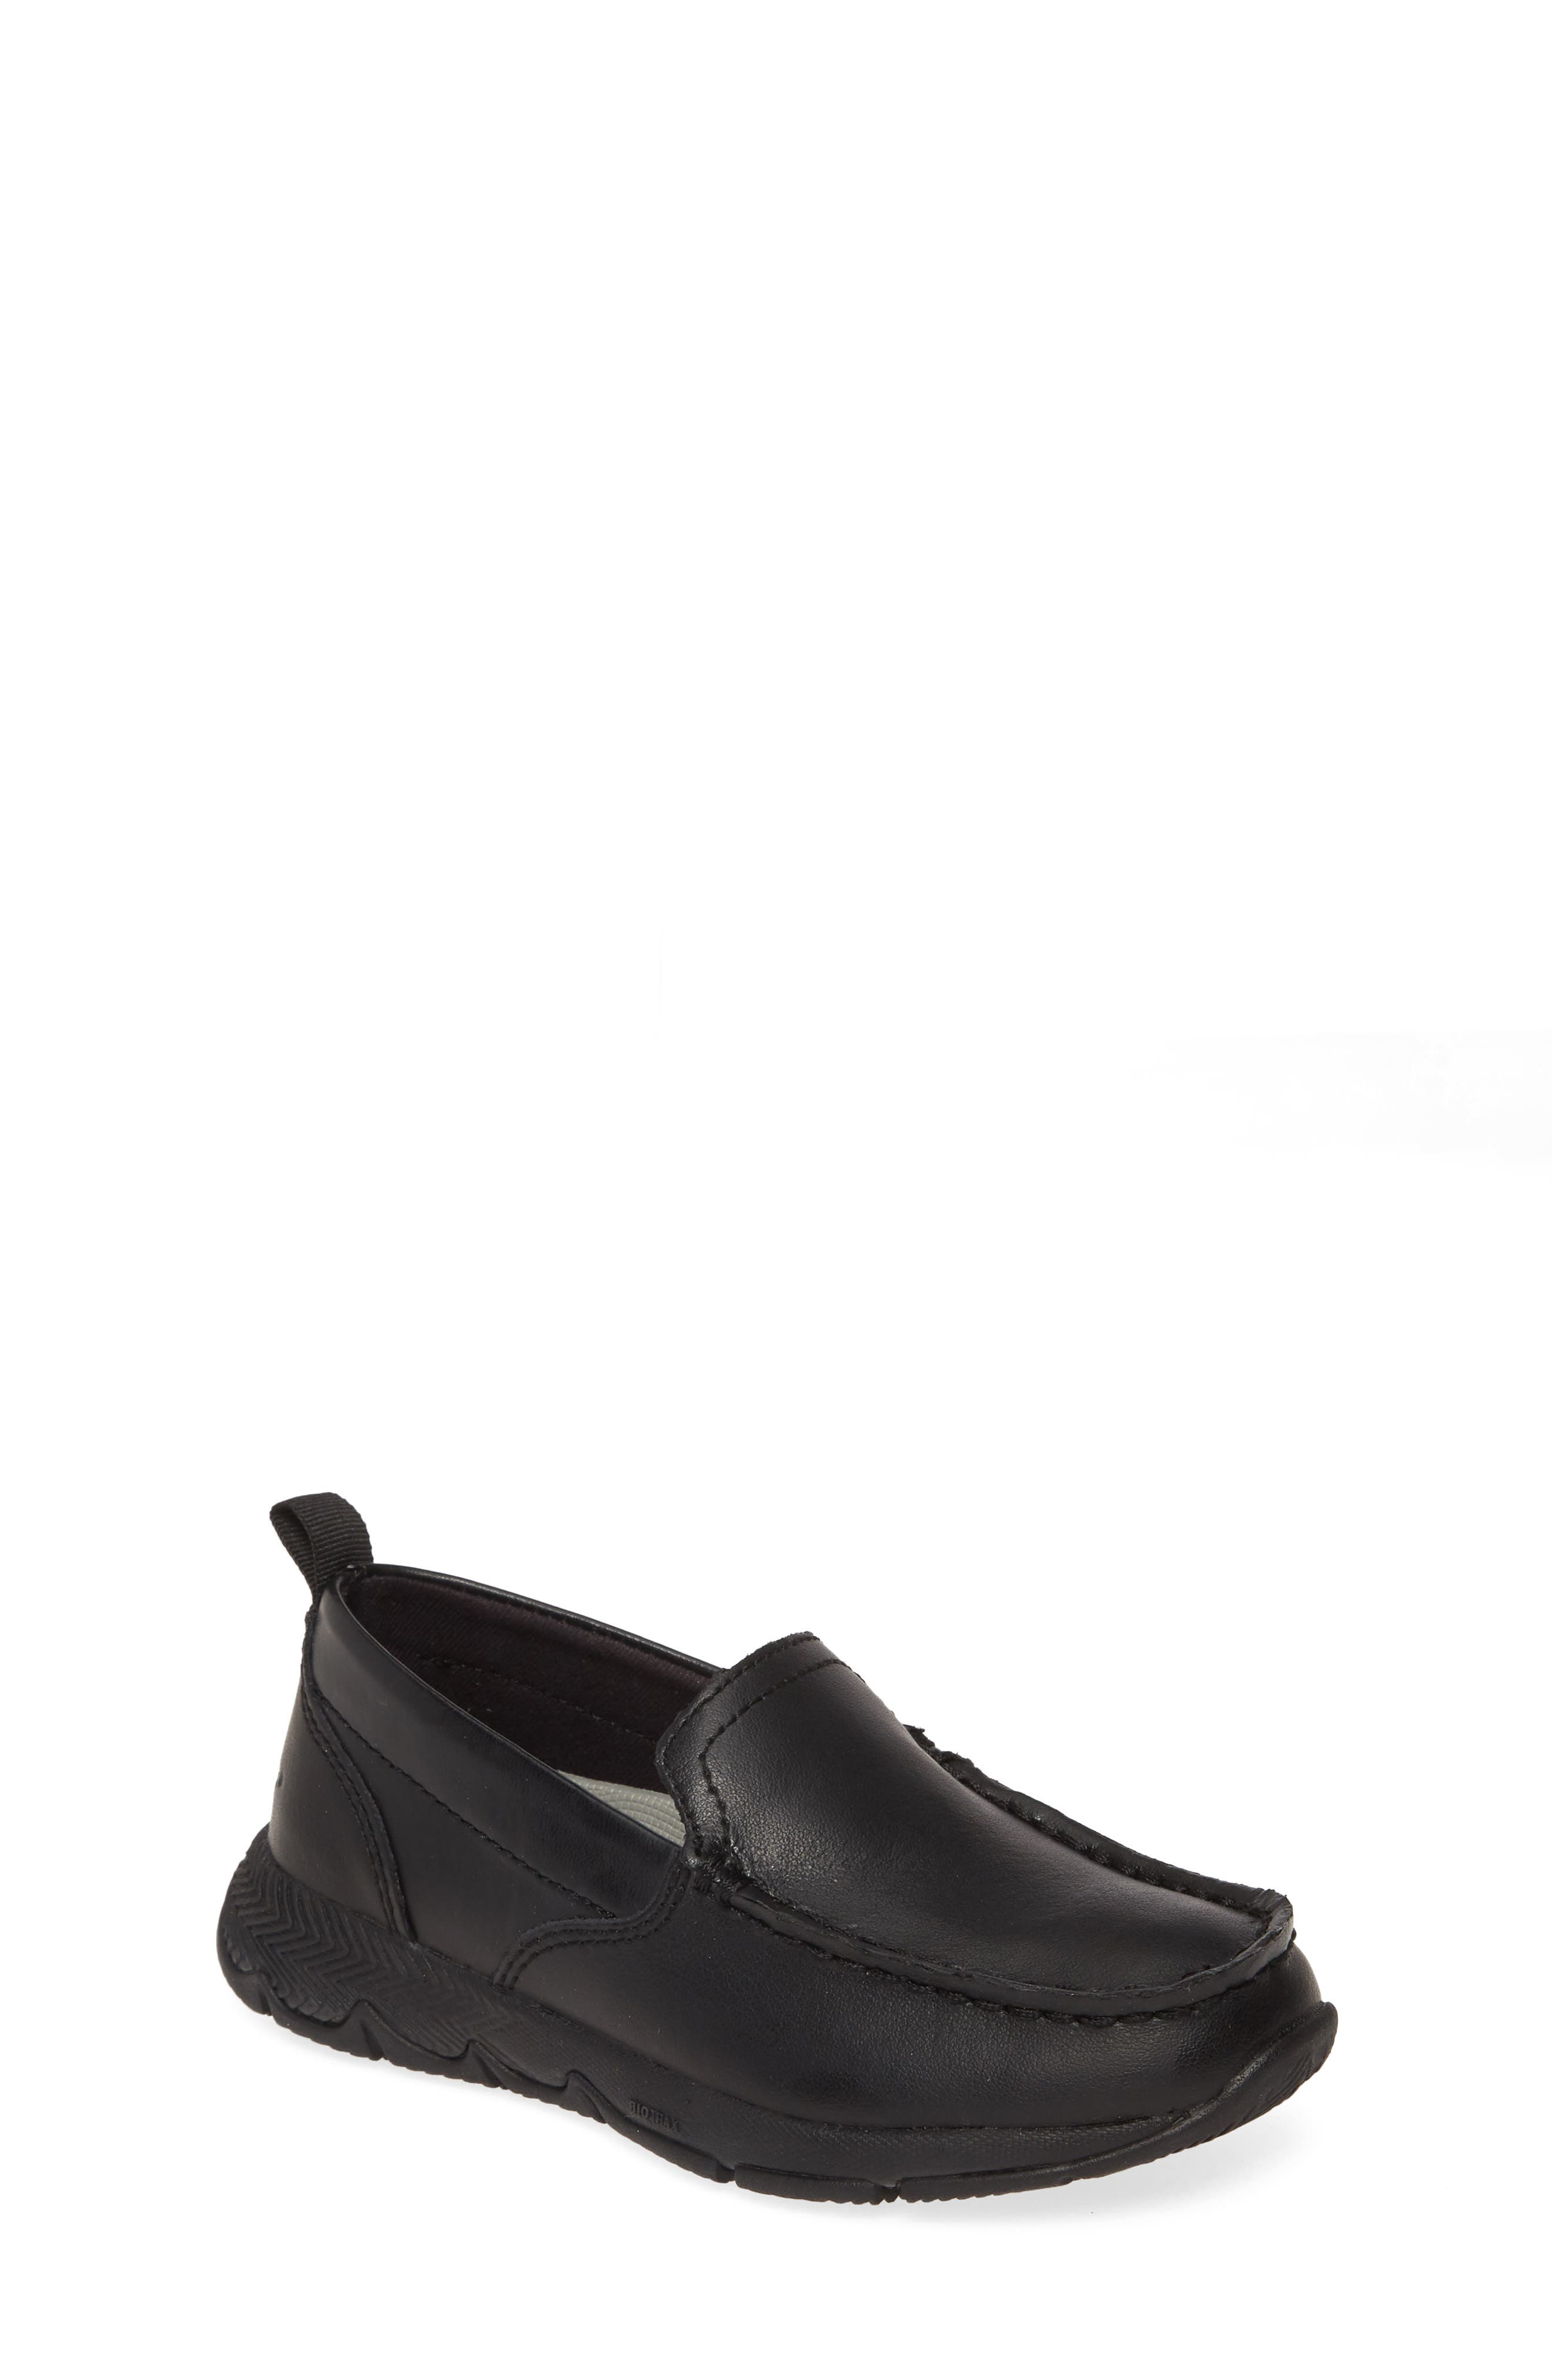 Hush Puppies Boys Loafers